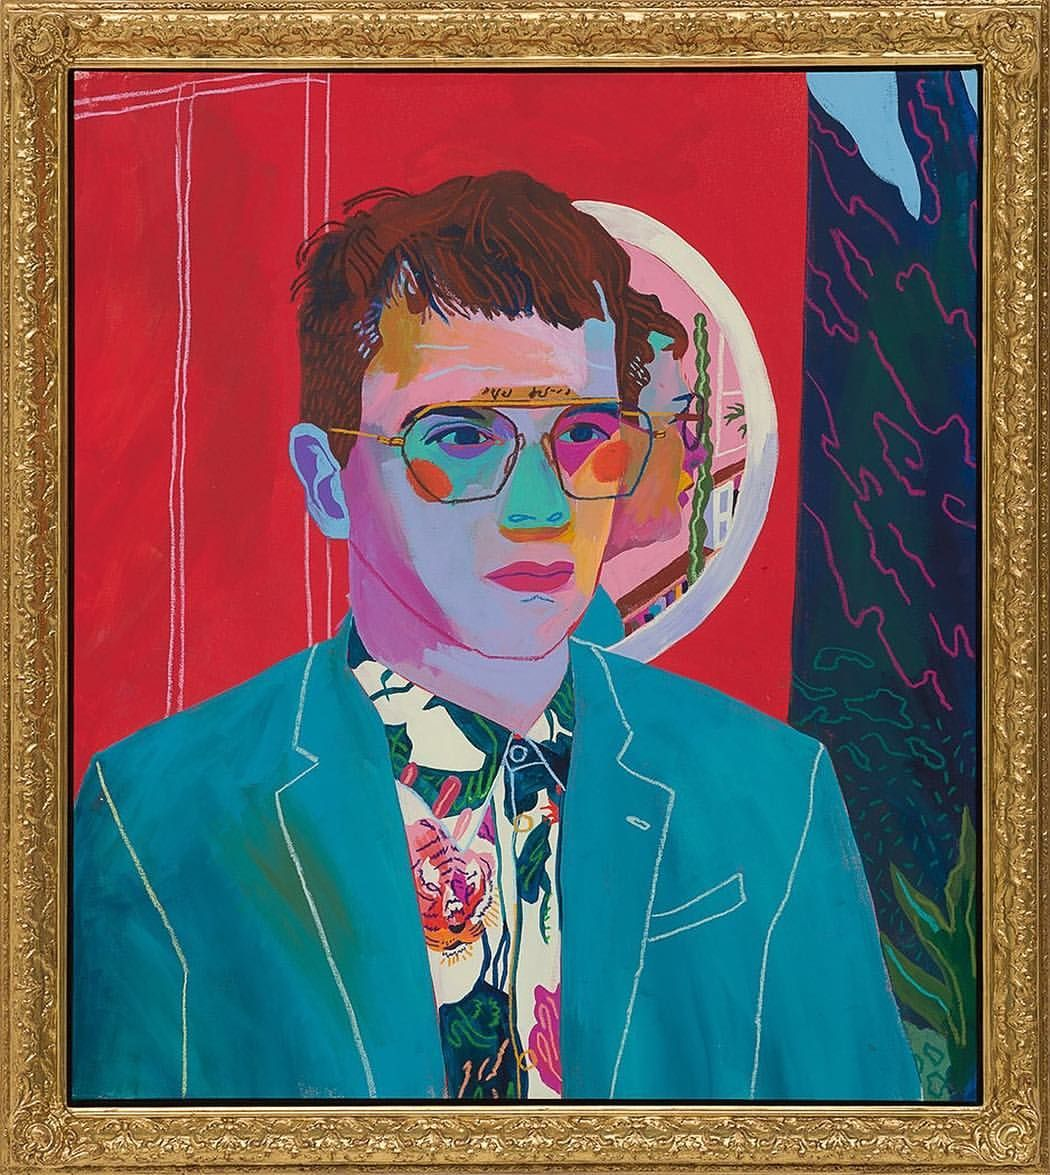 Self Portrait With Mirror In 24k Gold Gilded Artist